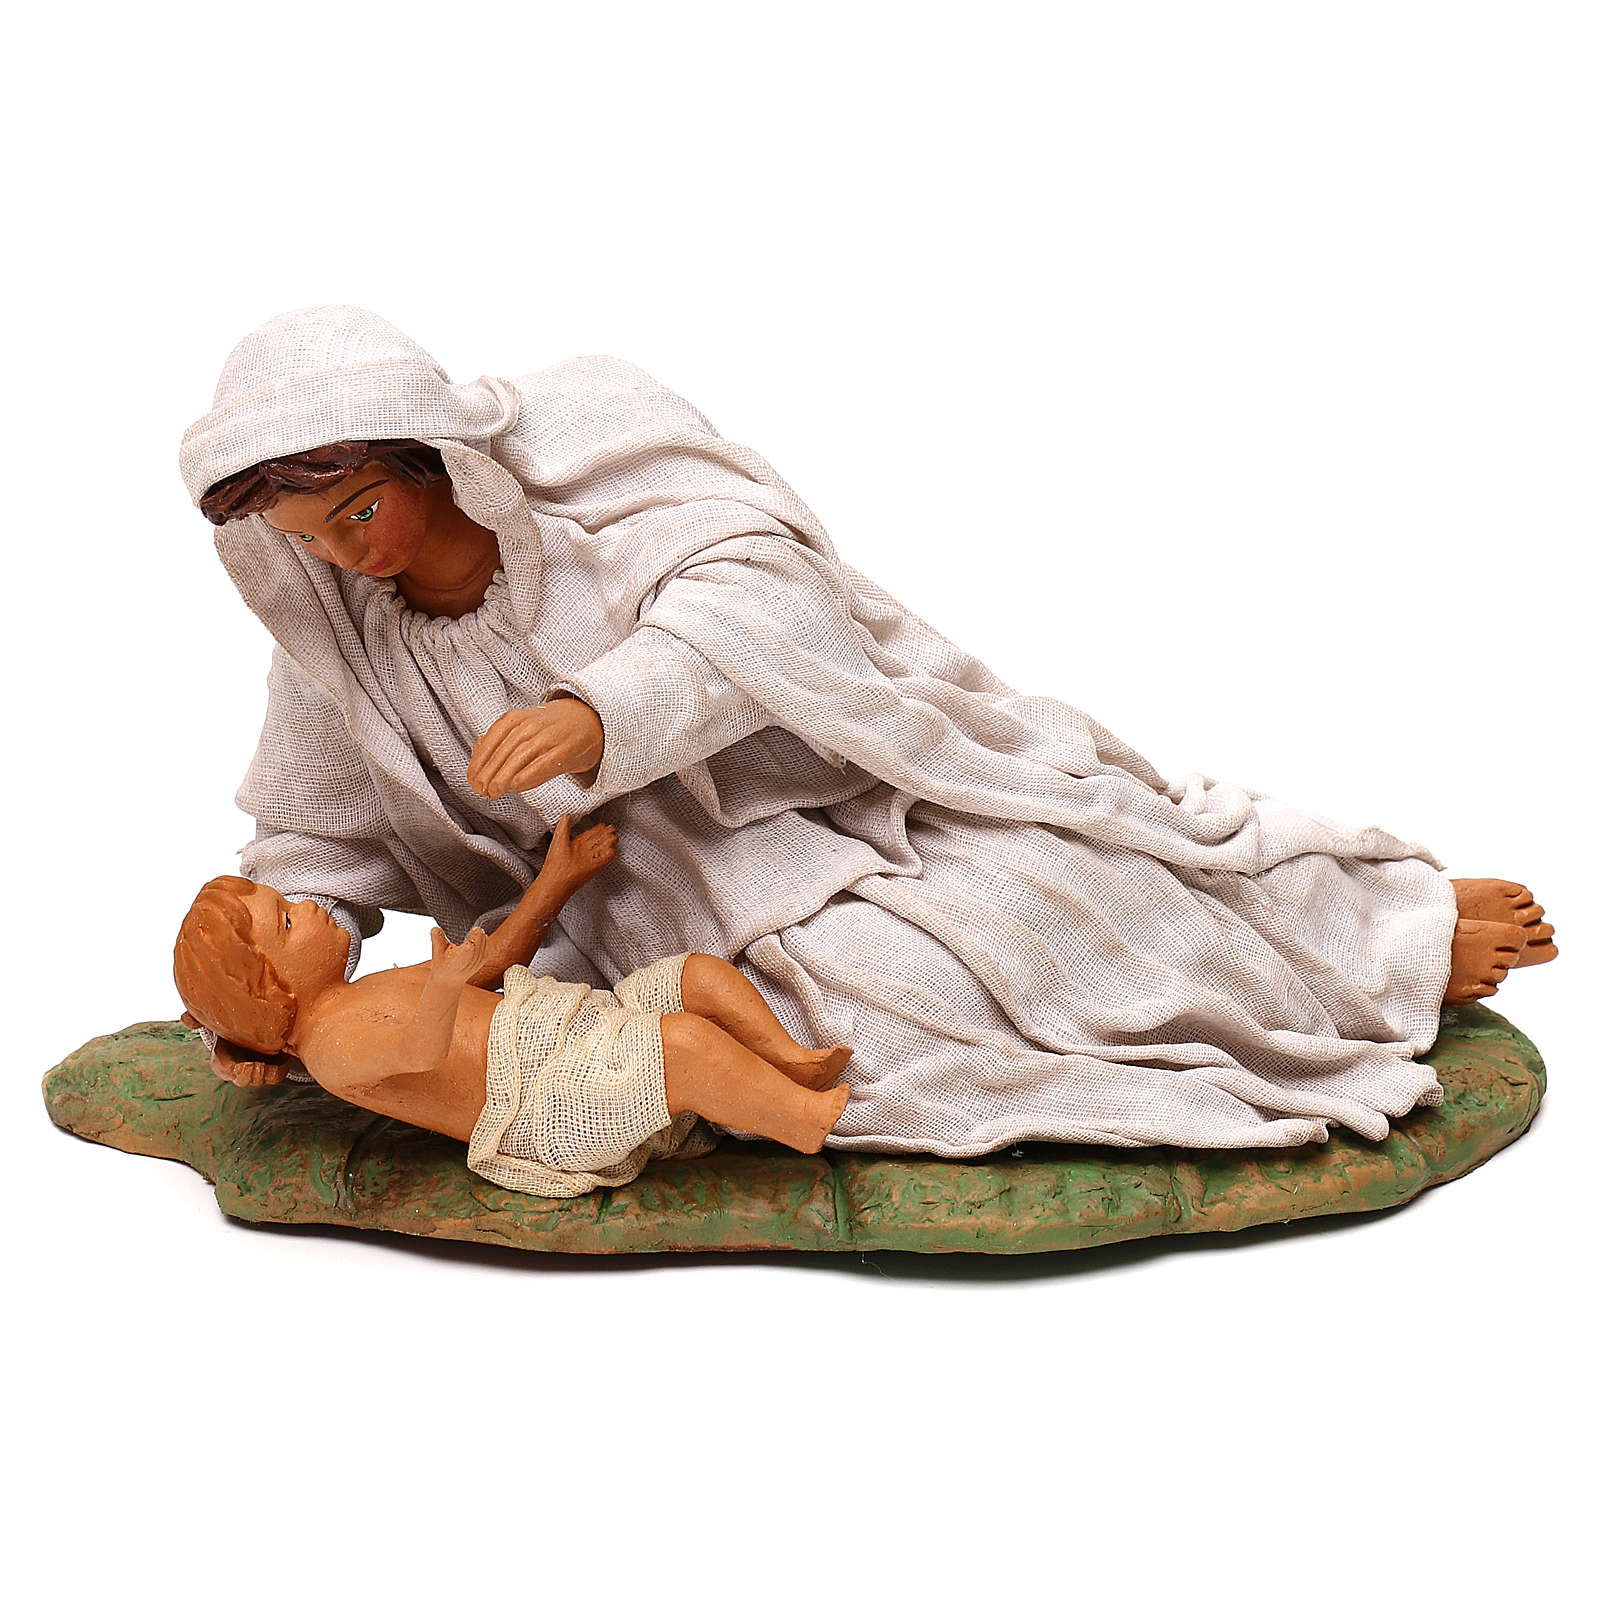 Nativity set accessory Mary resting with Baby 24 cm figurine 4